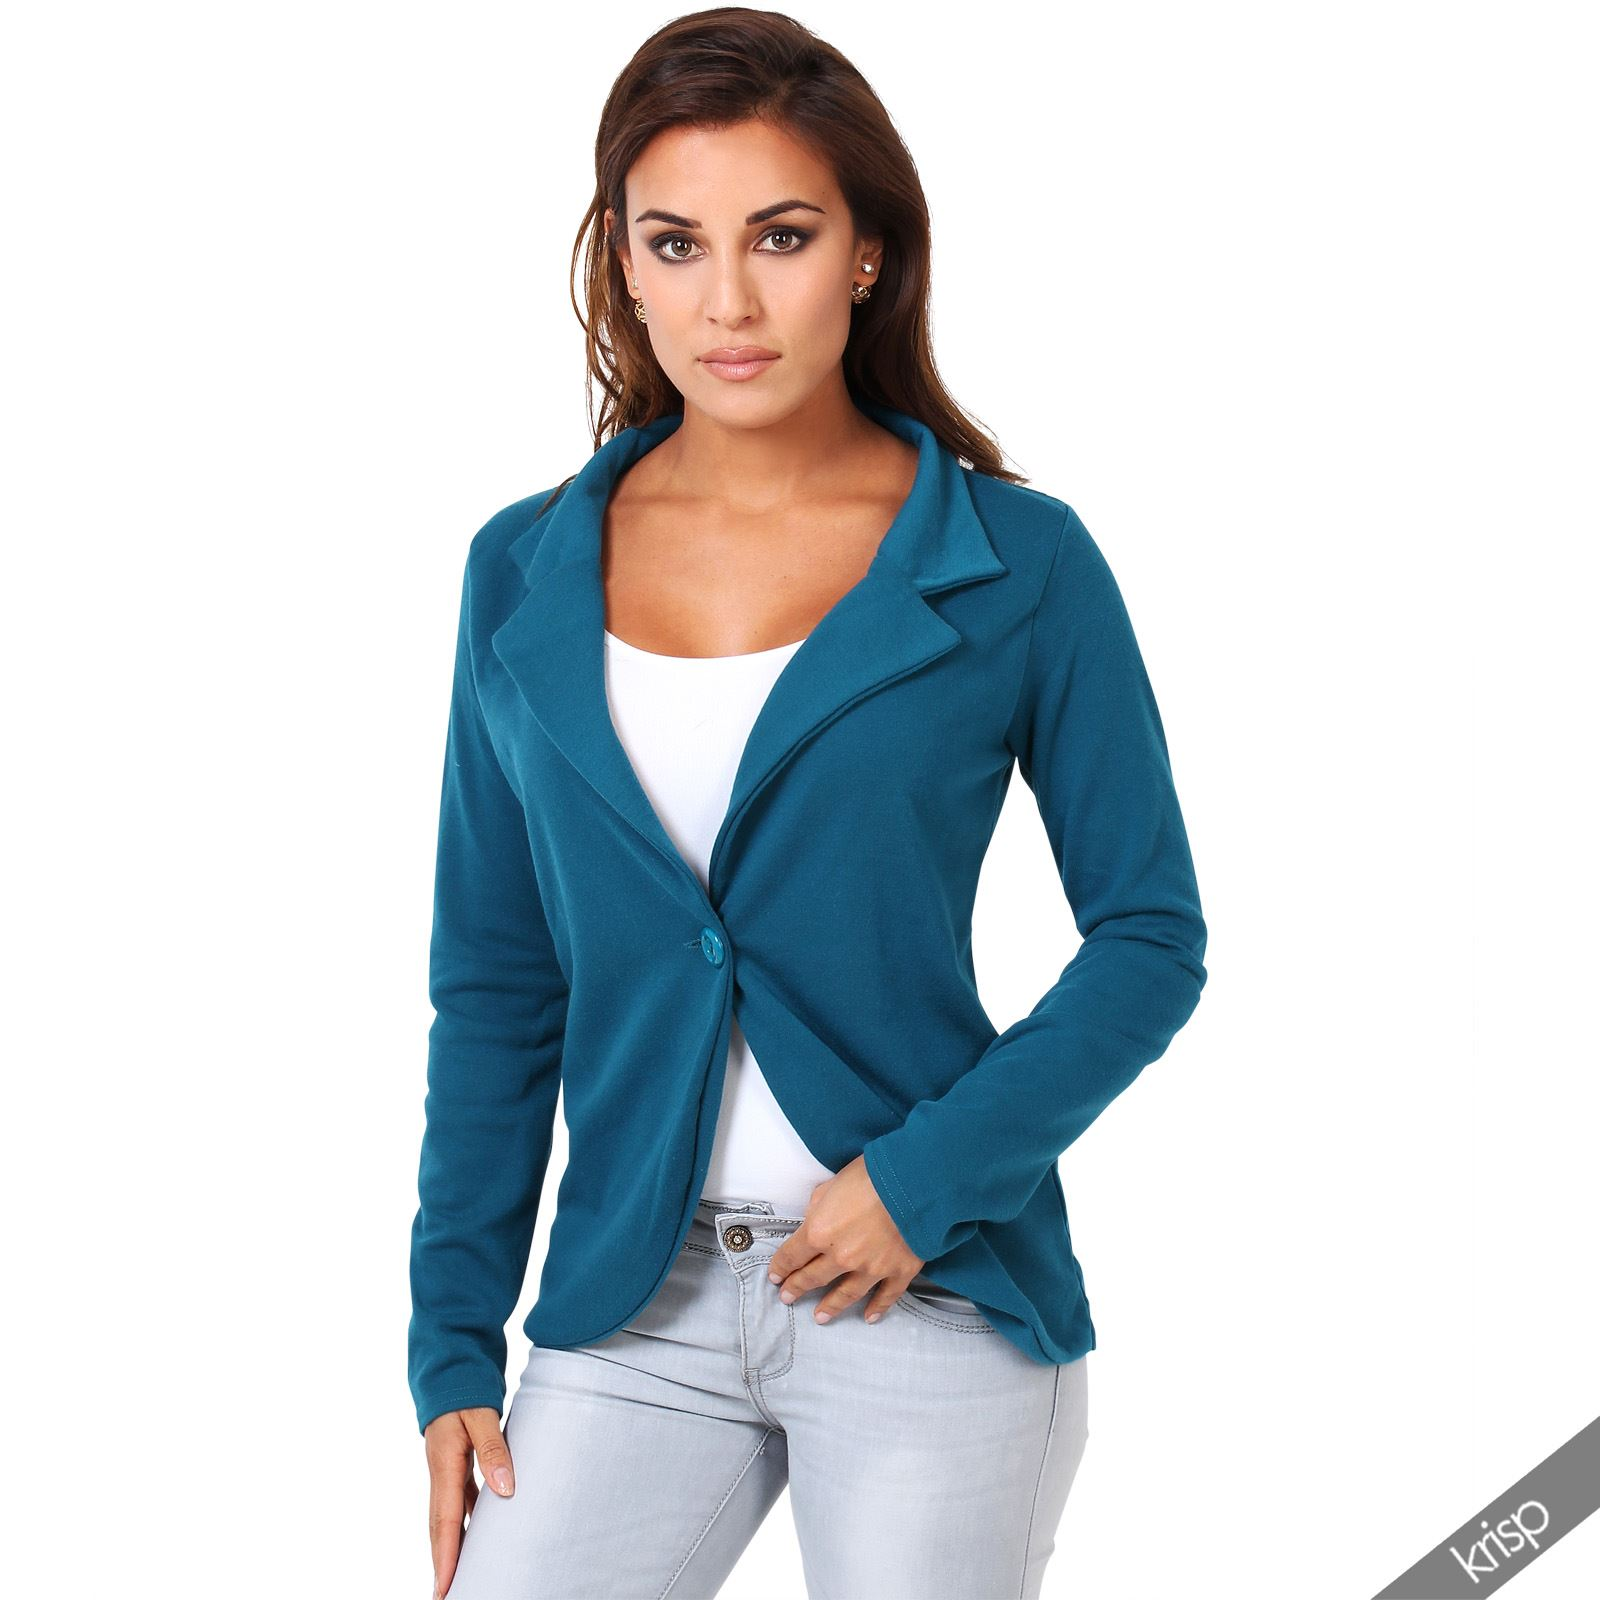 Blazers for women are usually worn in a business or professional setting; the sharply defined cuts and seams of a womens blazer has the effect of establishing her as a put-together person. A ladies blazer can be worn at one's workplace, for meetings, or even just out running errands.